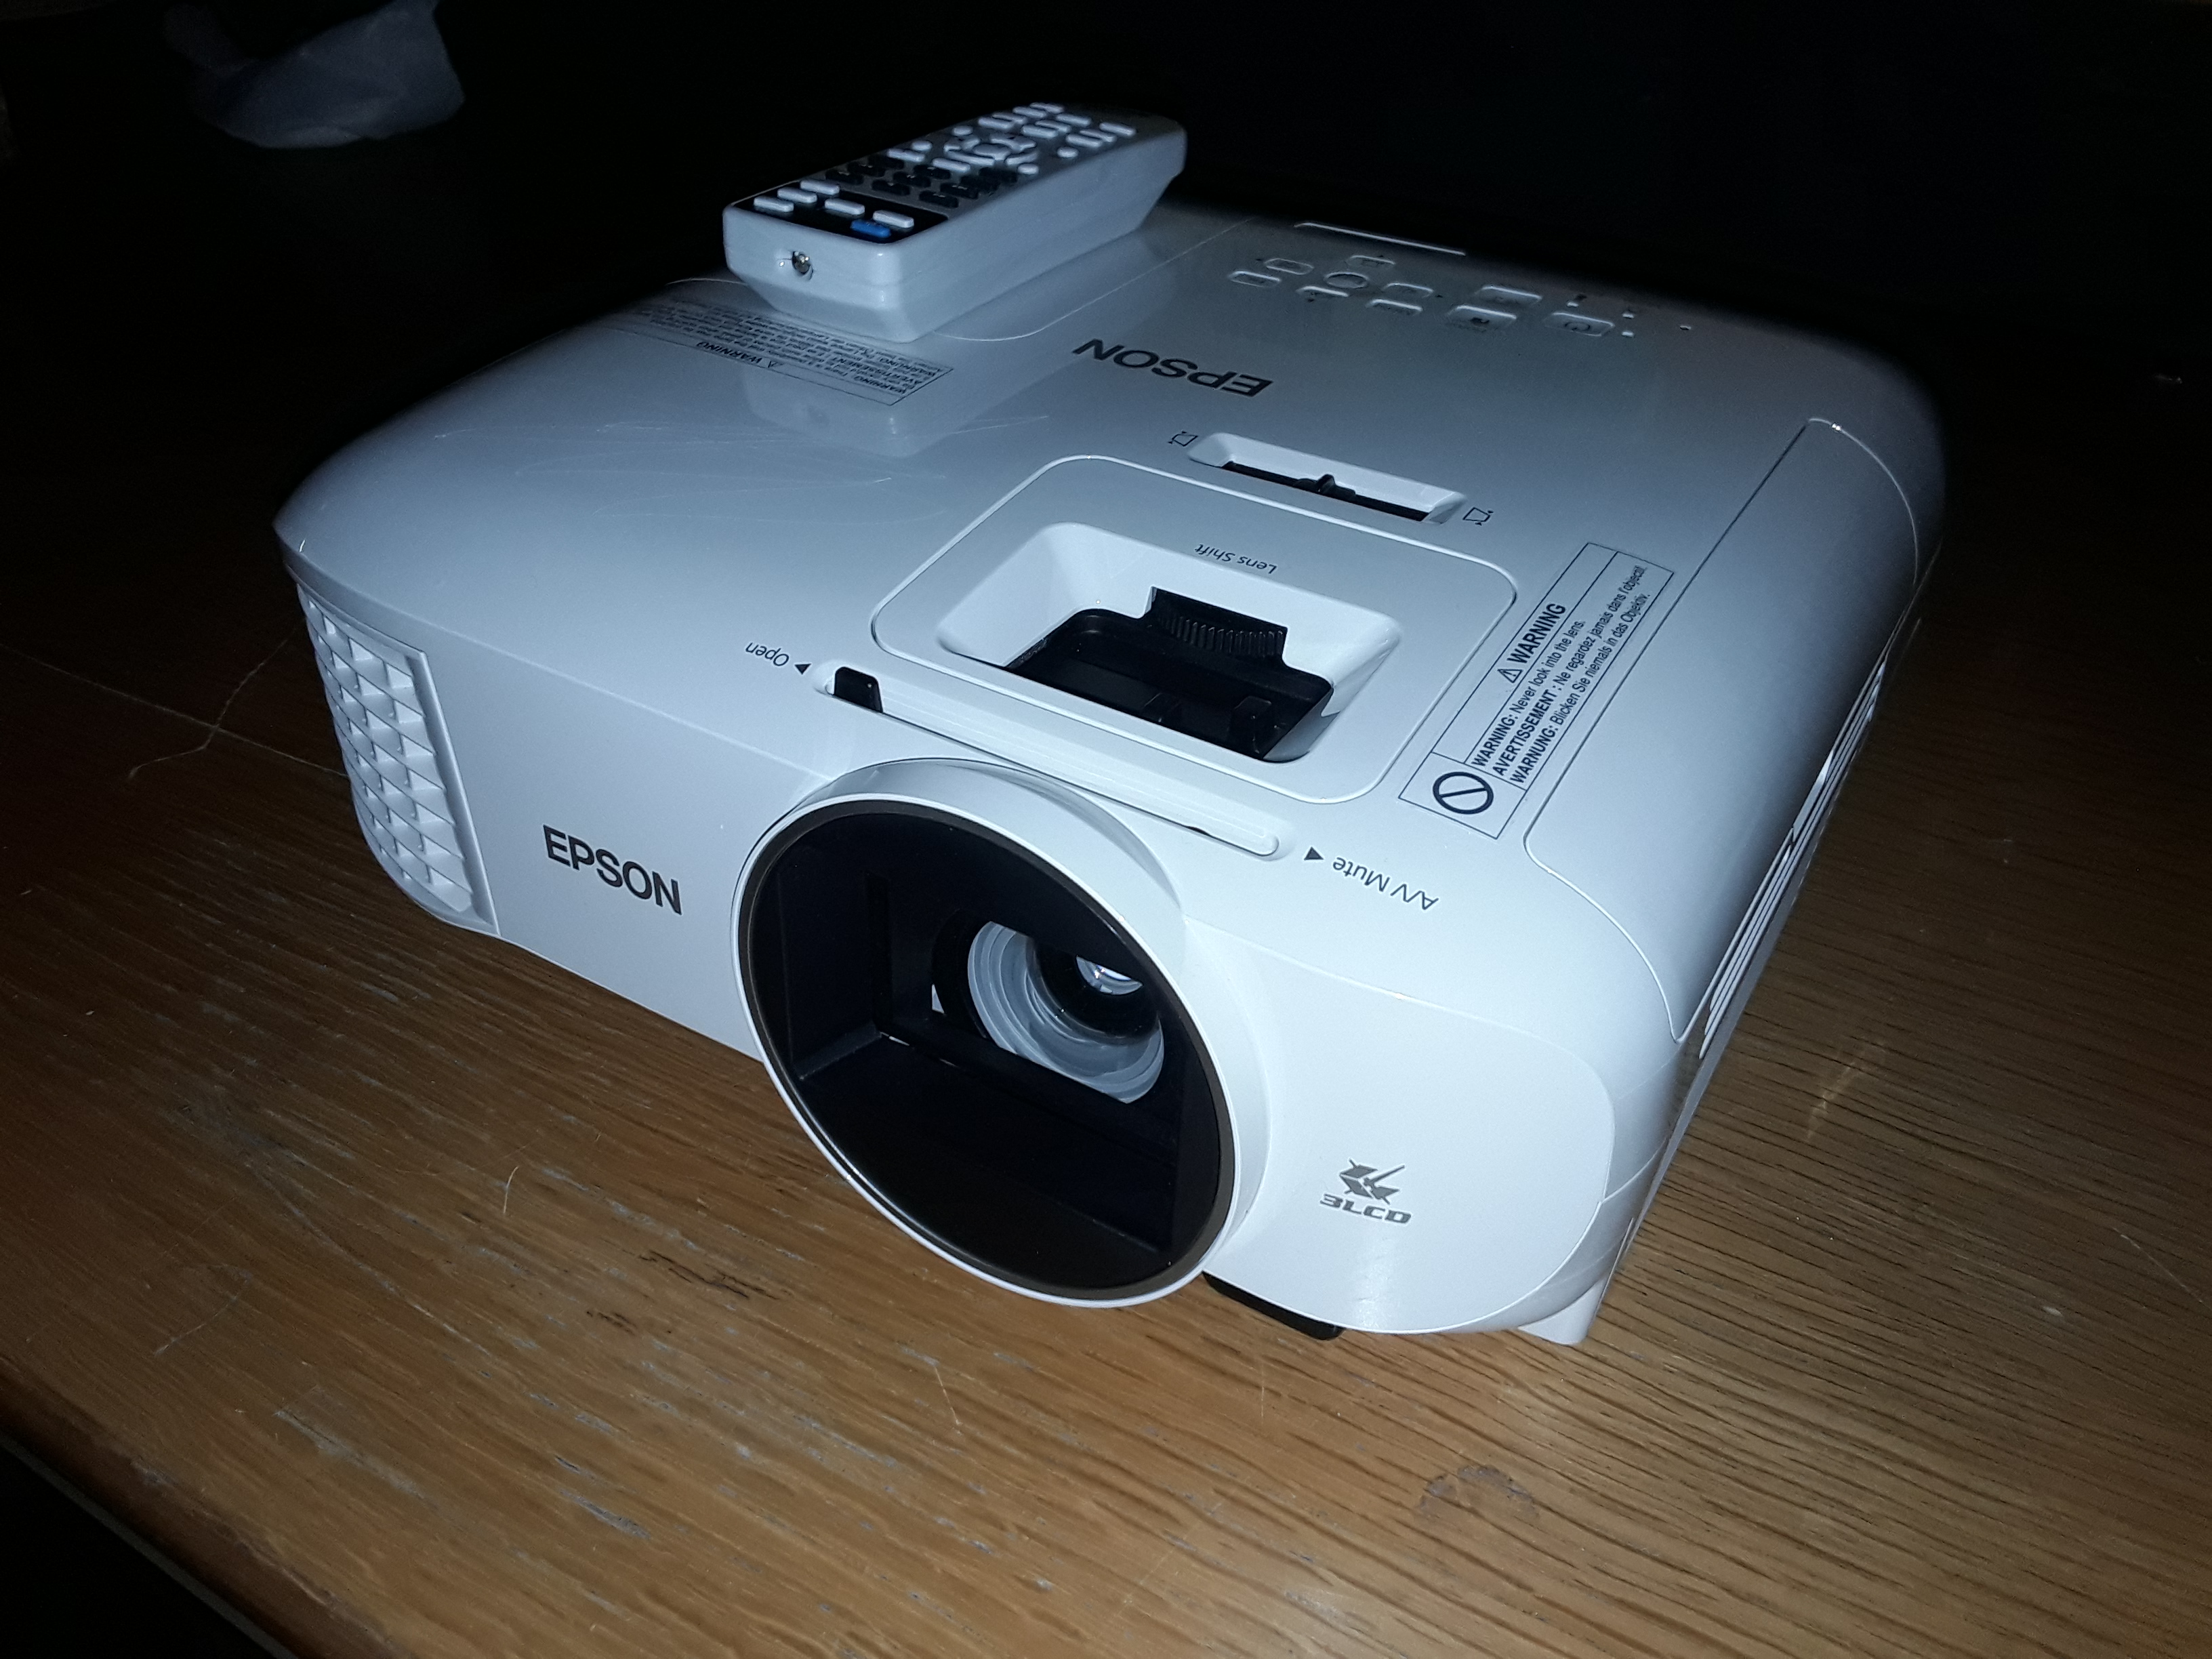 3ce169c206b4da Lot 19: EPSON EH-TW5600 WHITE 3D LCD 1080P HD READY PROJECTOR RRP £799.00